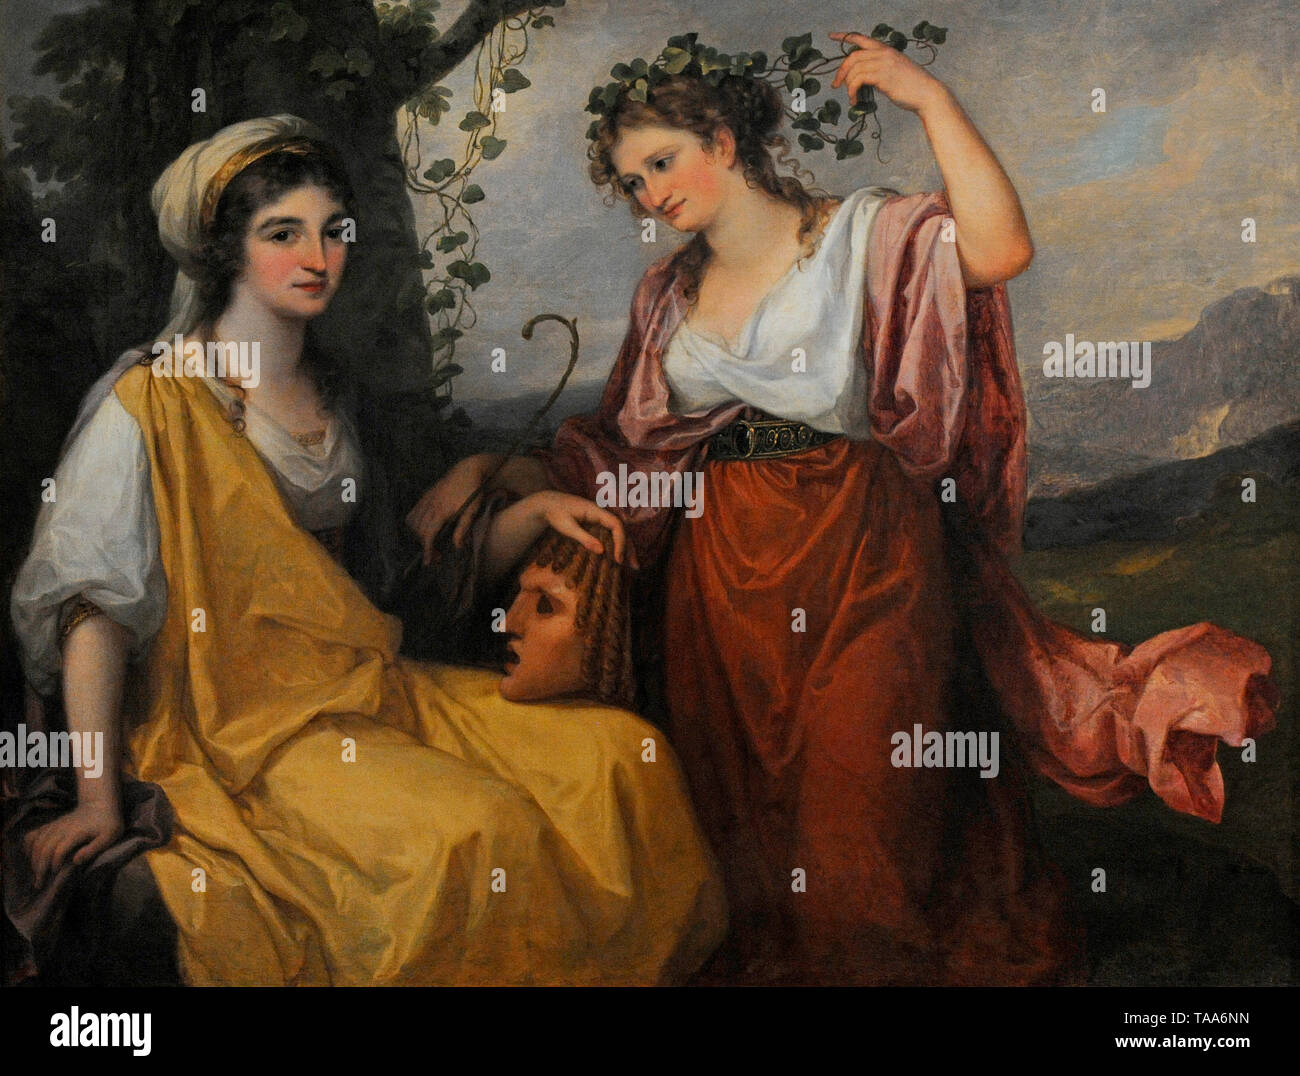 Angelica Kauffmann (1741-1807). Swiss Neoclassical painter. Portrait of Domenica Morghen and Maddalena Volpato as Muse of Tragedy and Muse of Comedy, 1791. National Museum. Warsaw. Poland. - Stock Image